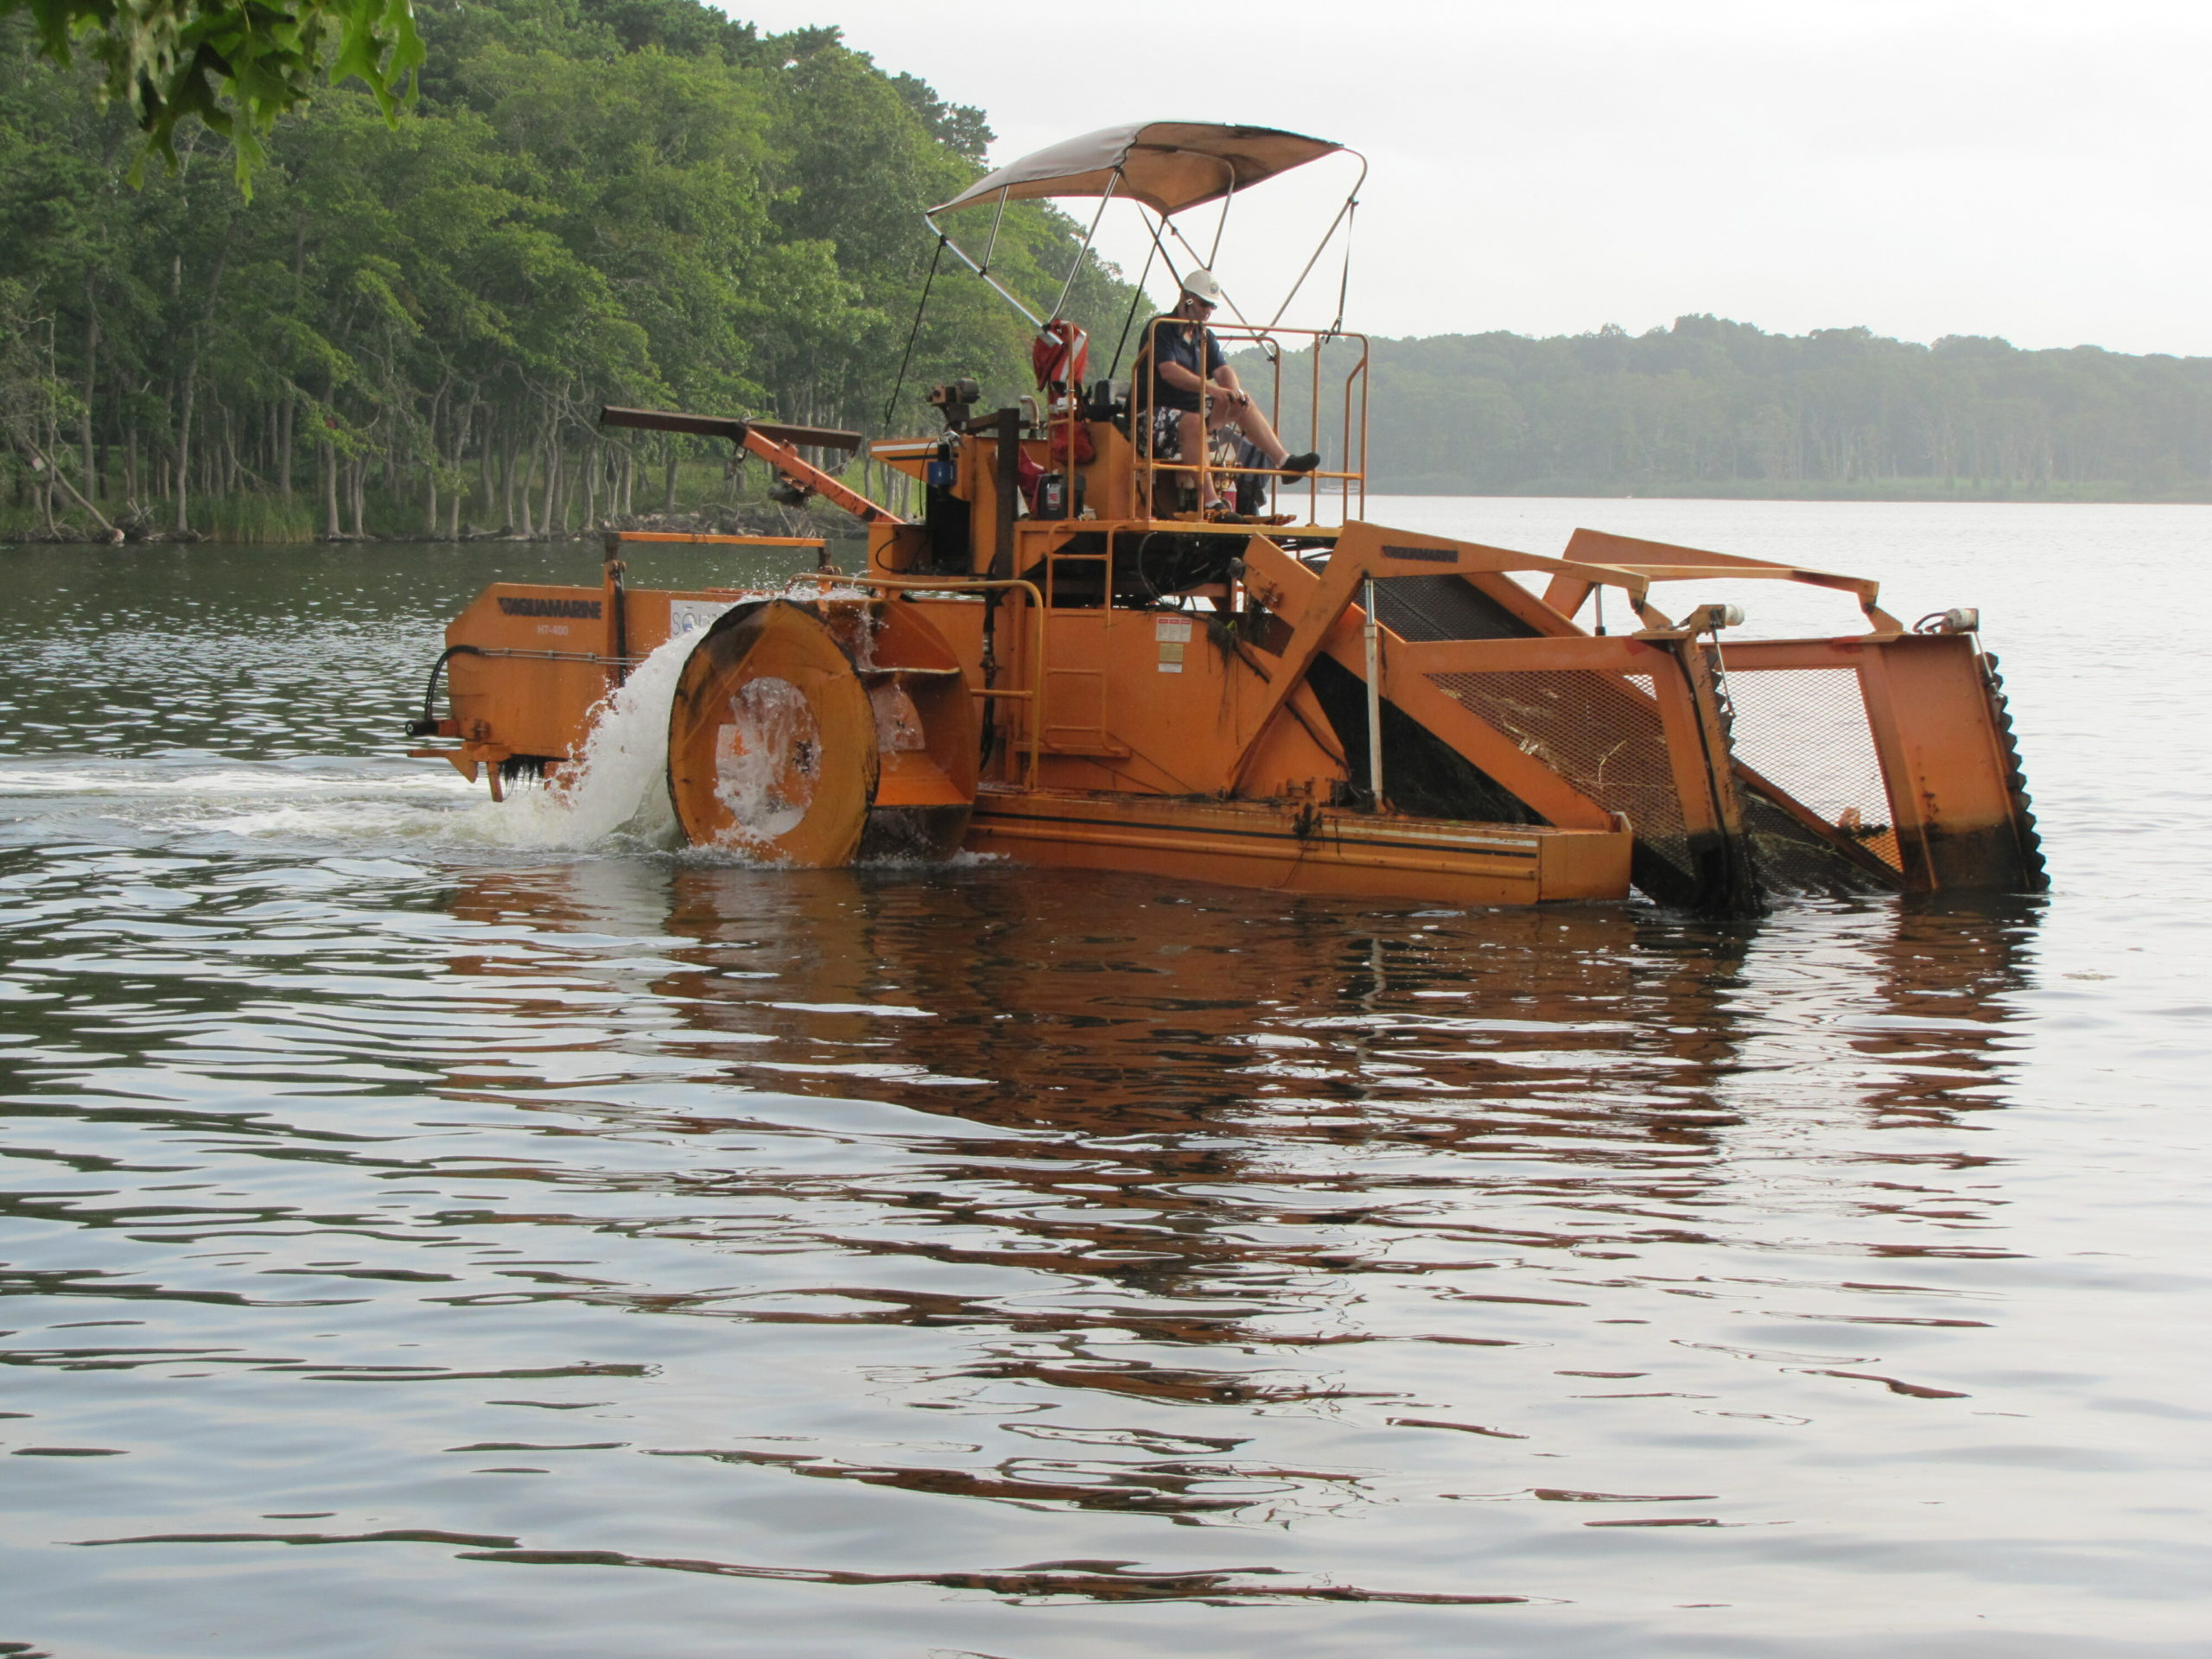 The floating tractor known as an aquatic weed harvester has been an important cog in the Friends of Georgica Pond's fight to control algae blooms in the pond.